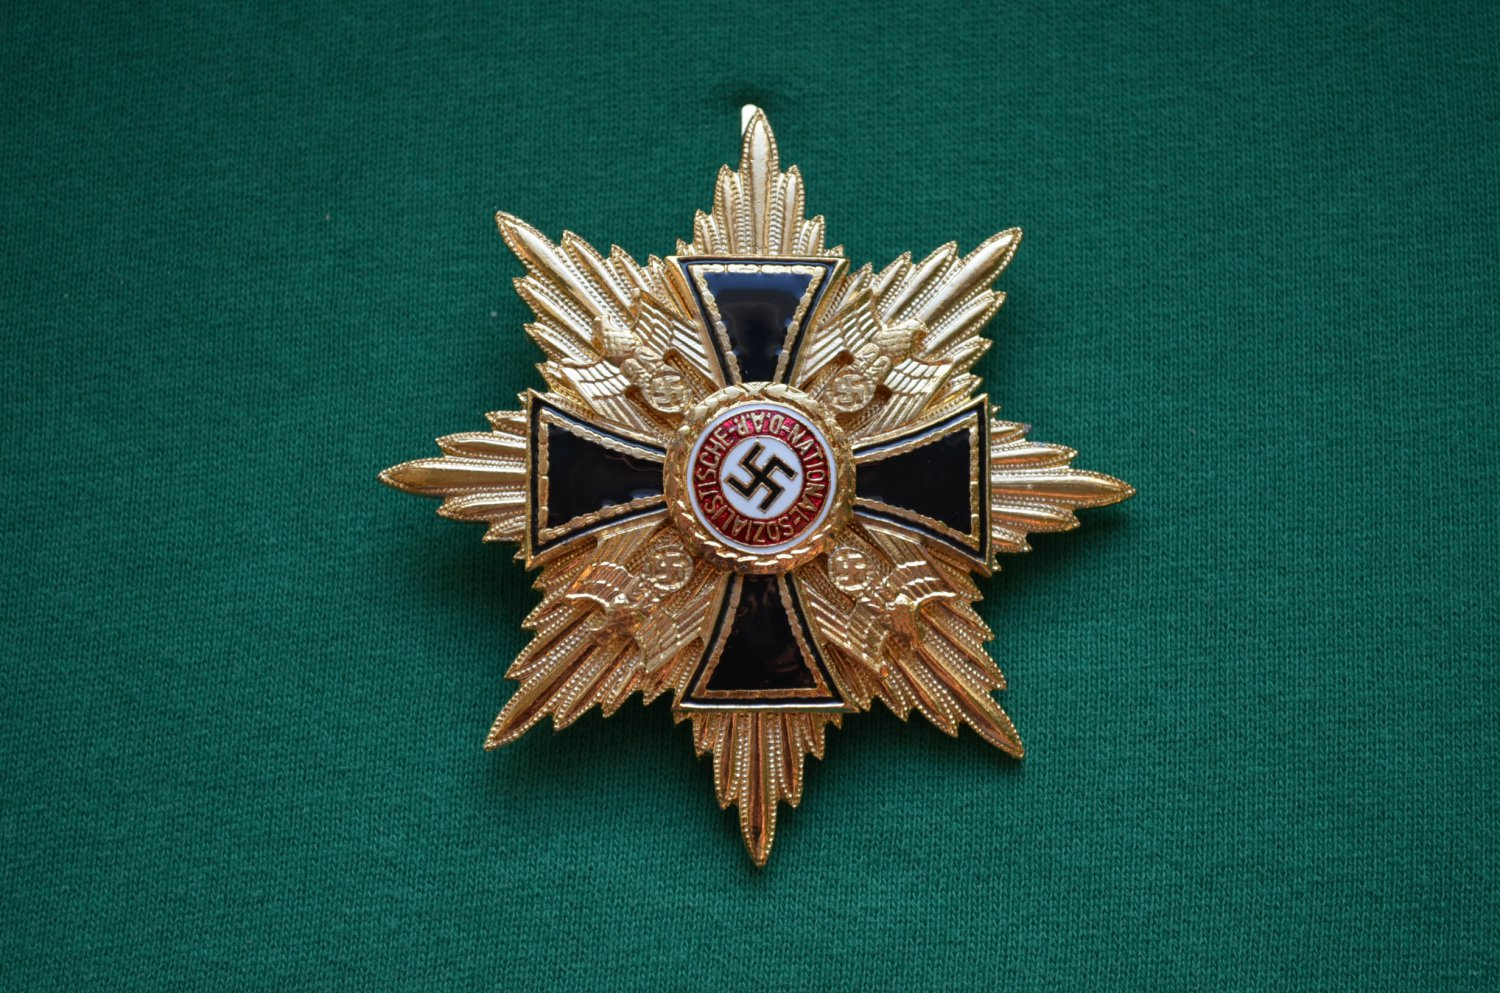 WWII STAR GERMAN ORDER